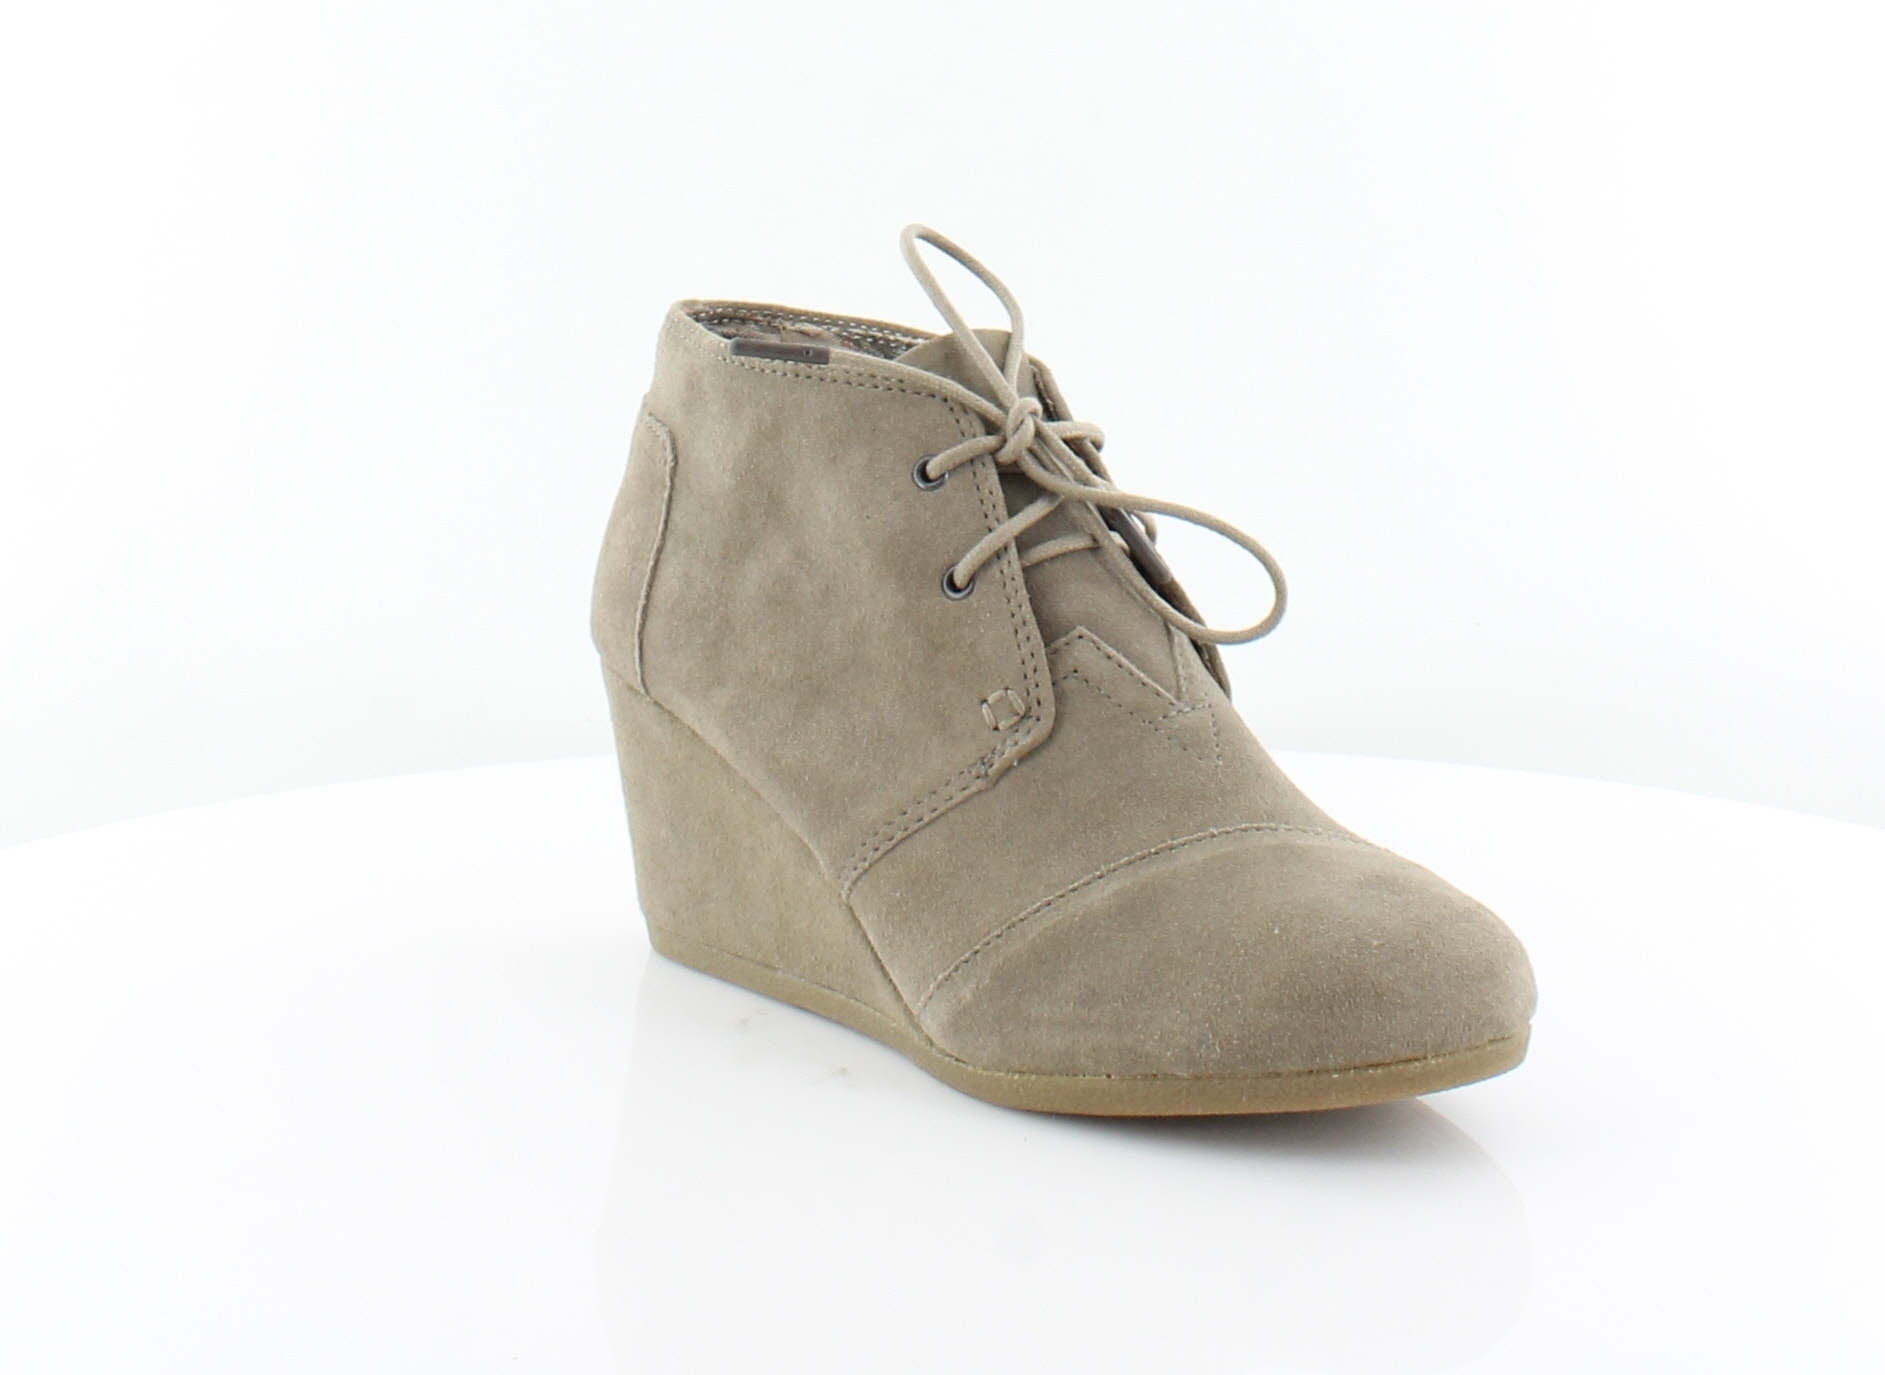 e560df80926 TOMS Desert Wedge Gray Womens Shoes Size 9 M Heels MSRP  89 ...